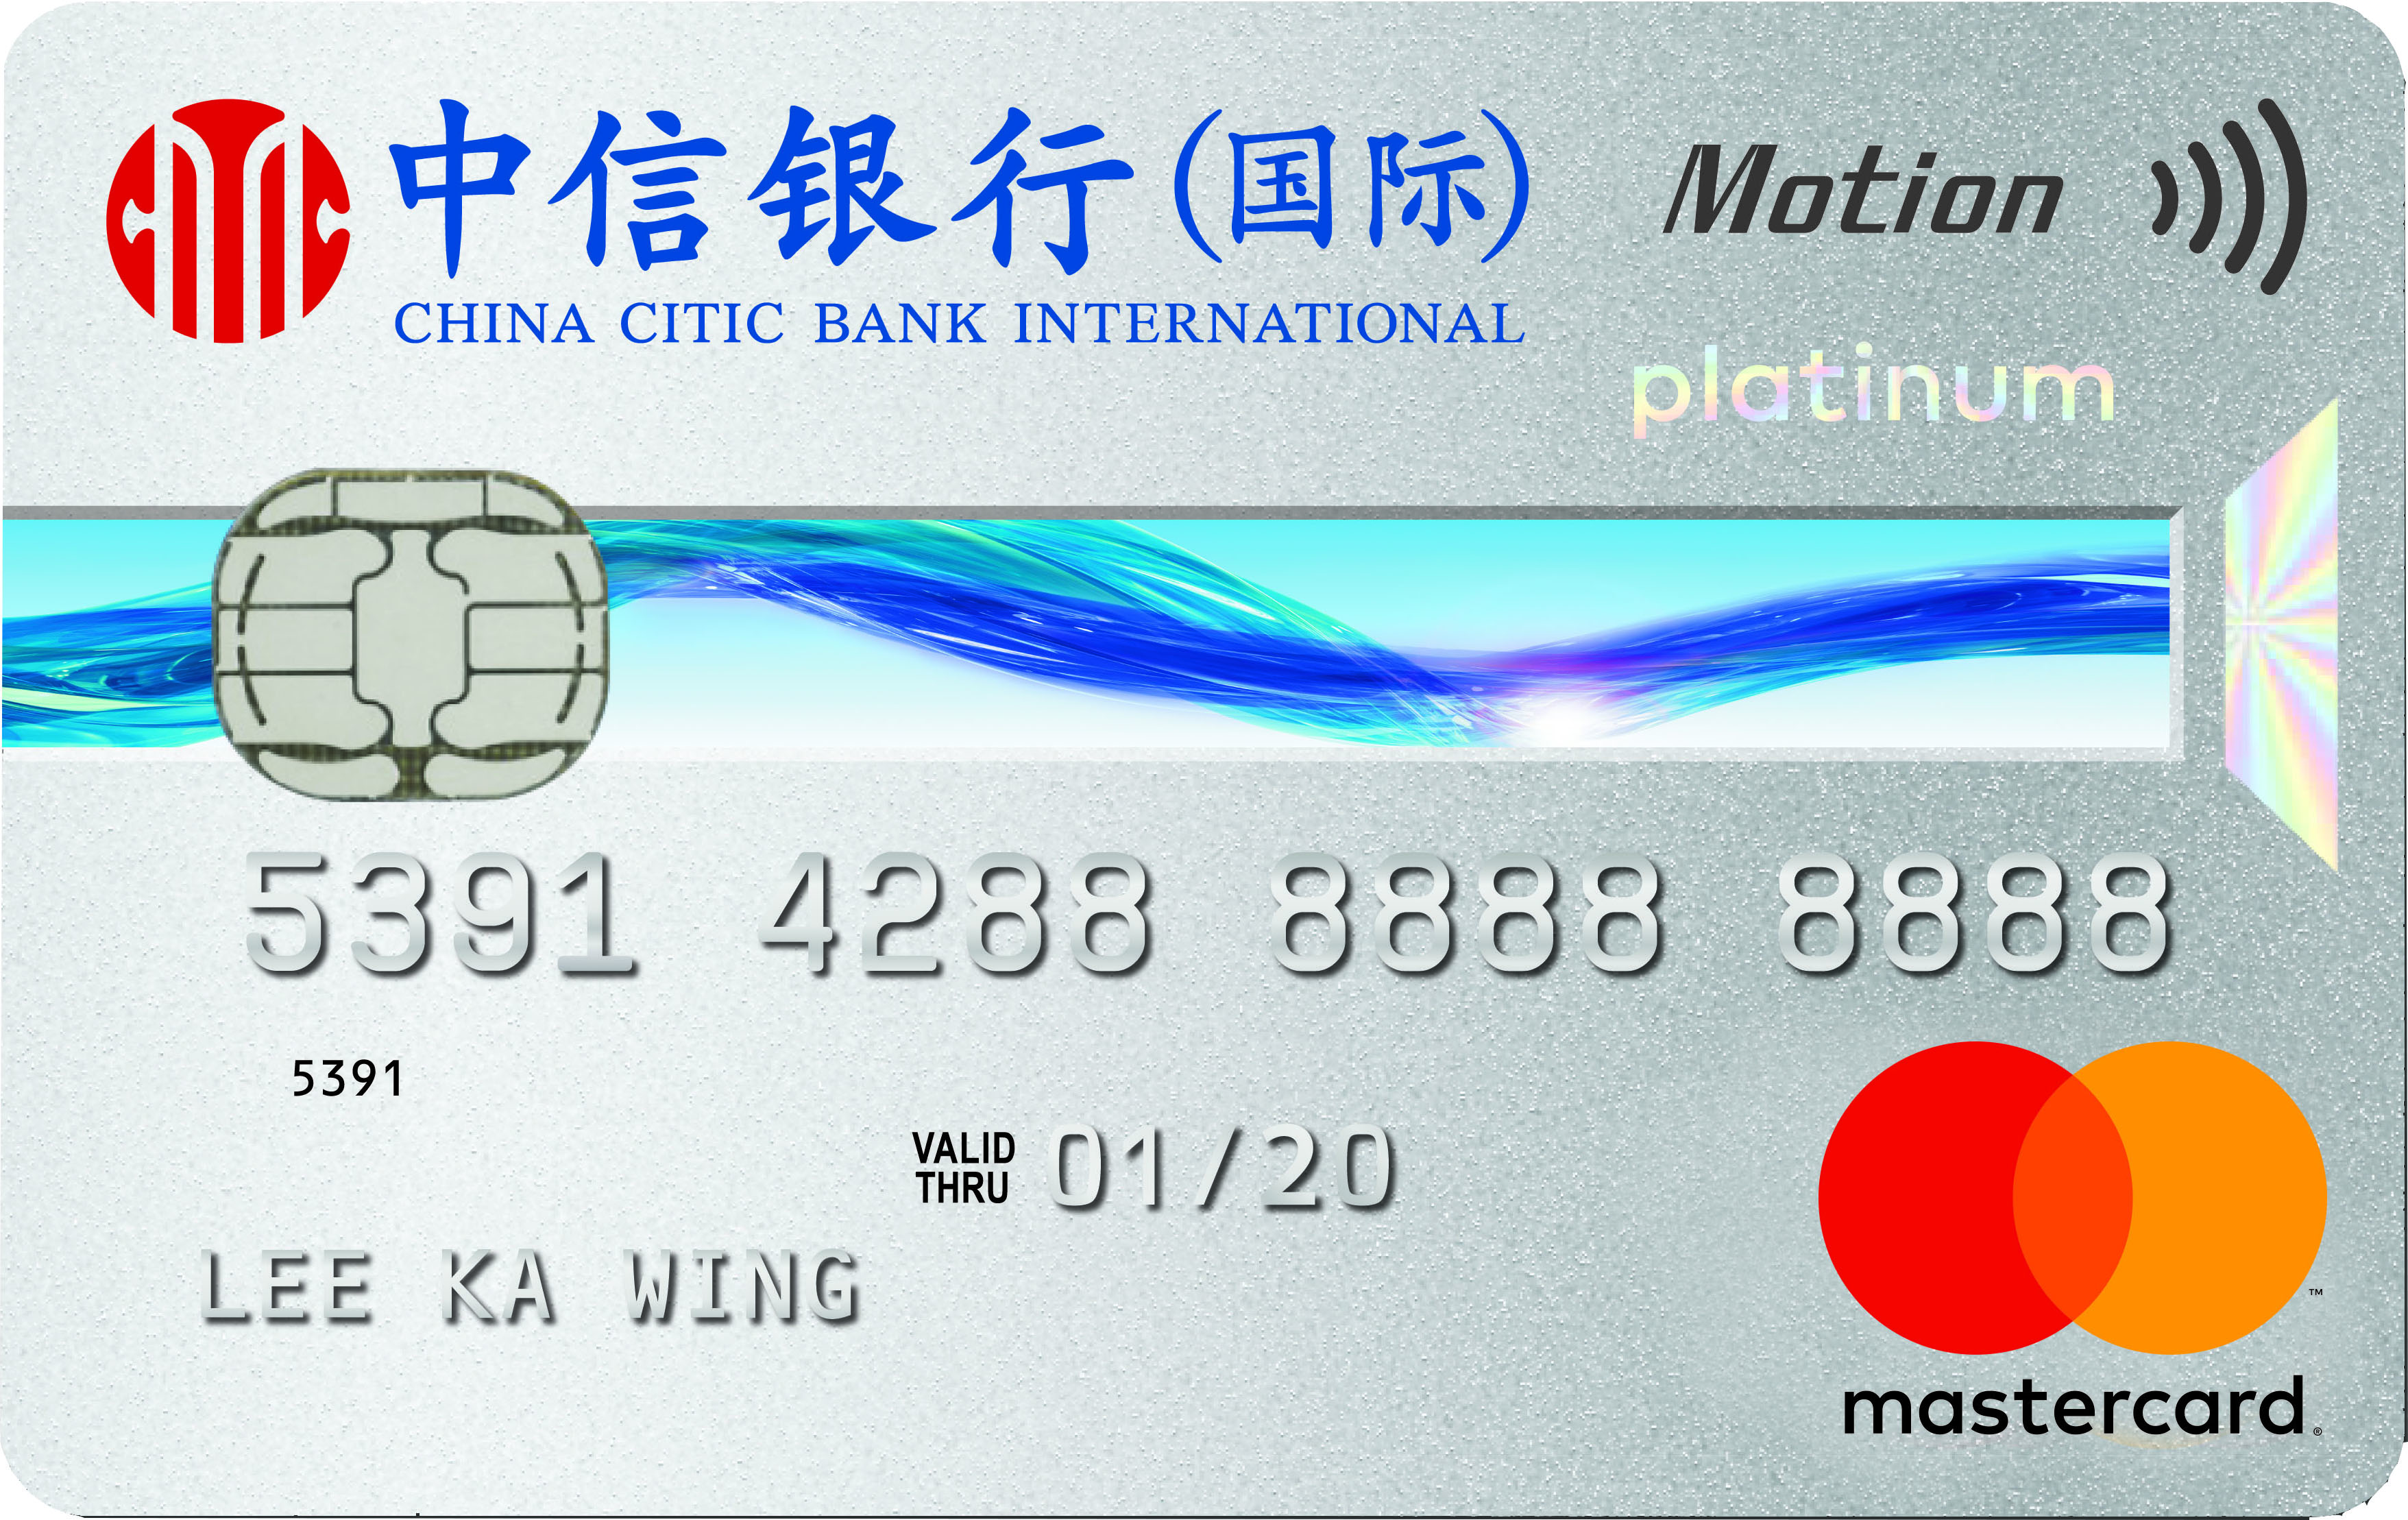 信銀國際 citic motion